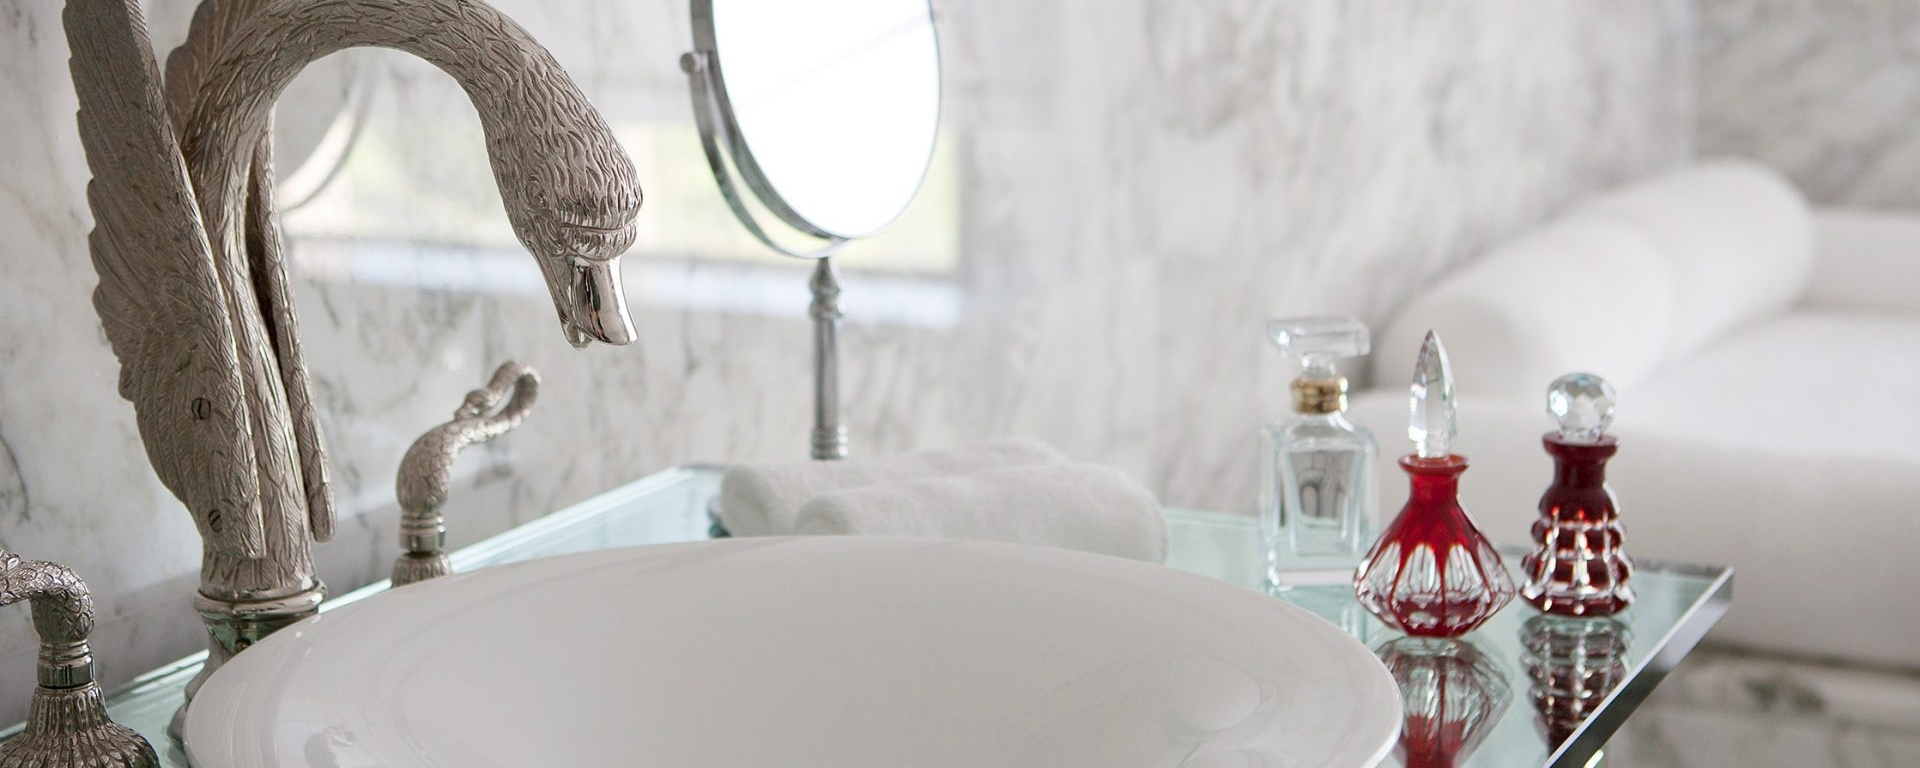 basin sink with swan faucet in tower suite